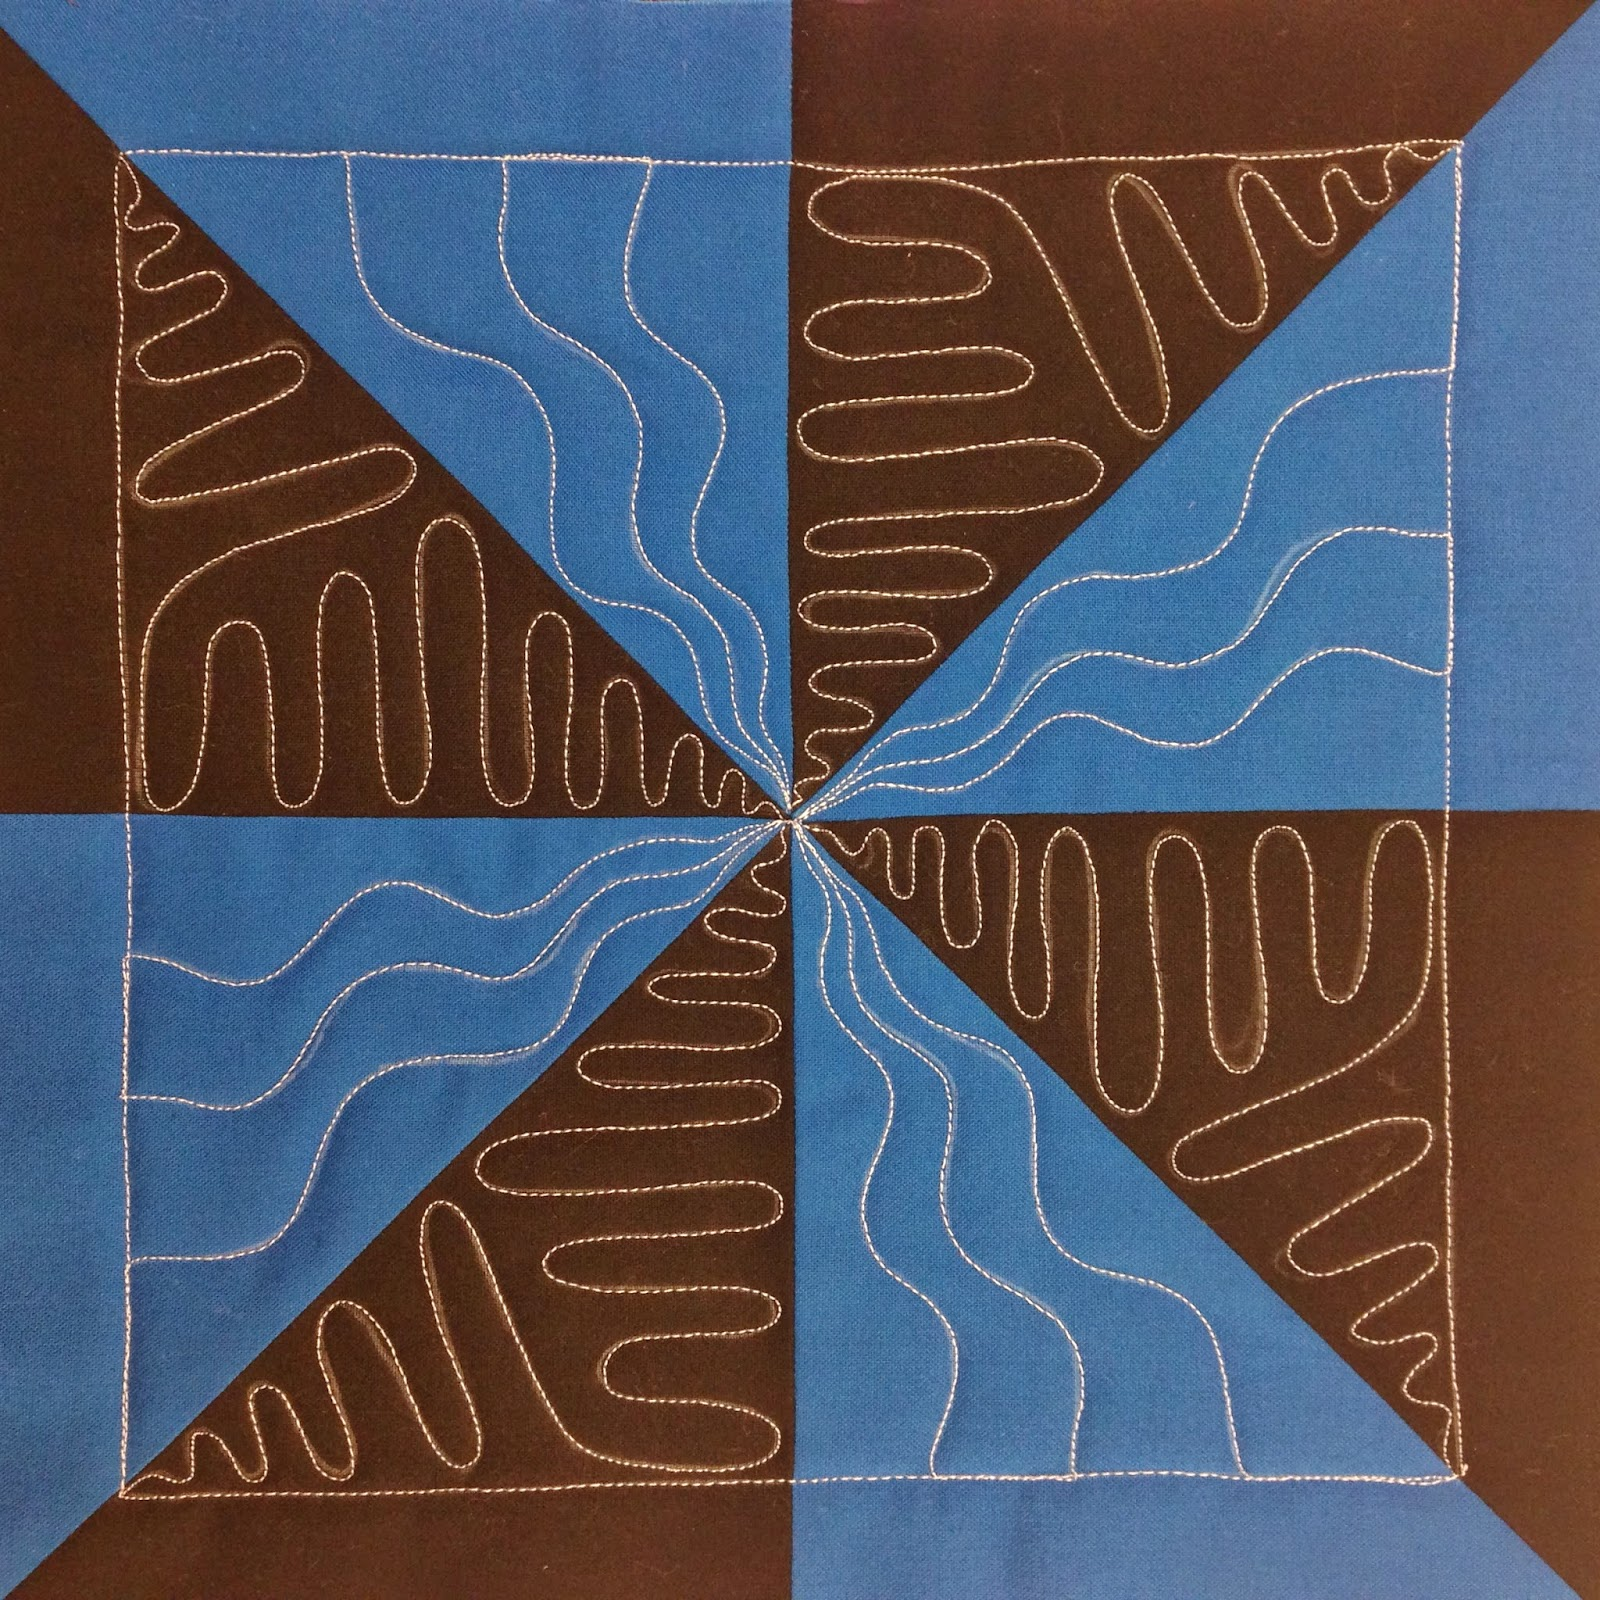 http://freemotionquilting.blogspot.com/p/blog-page.html